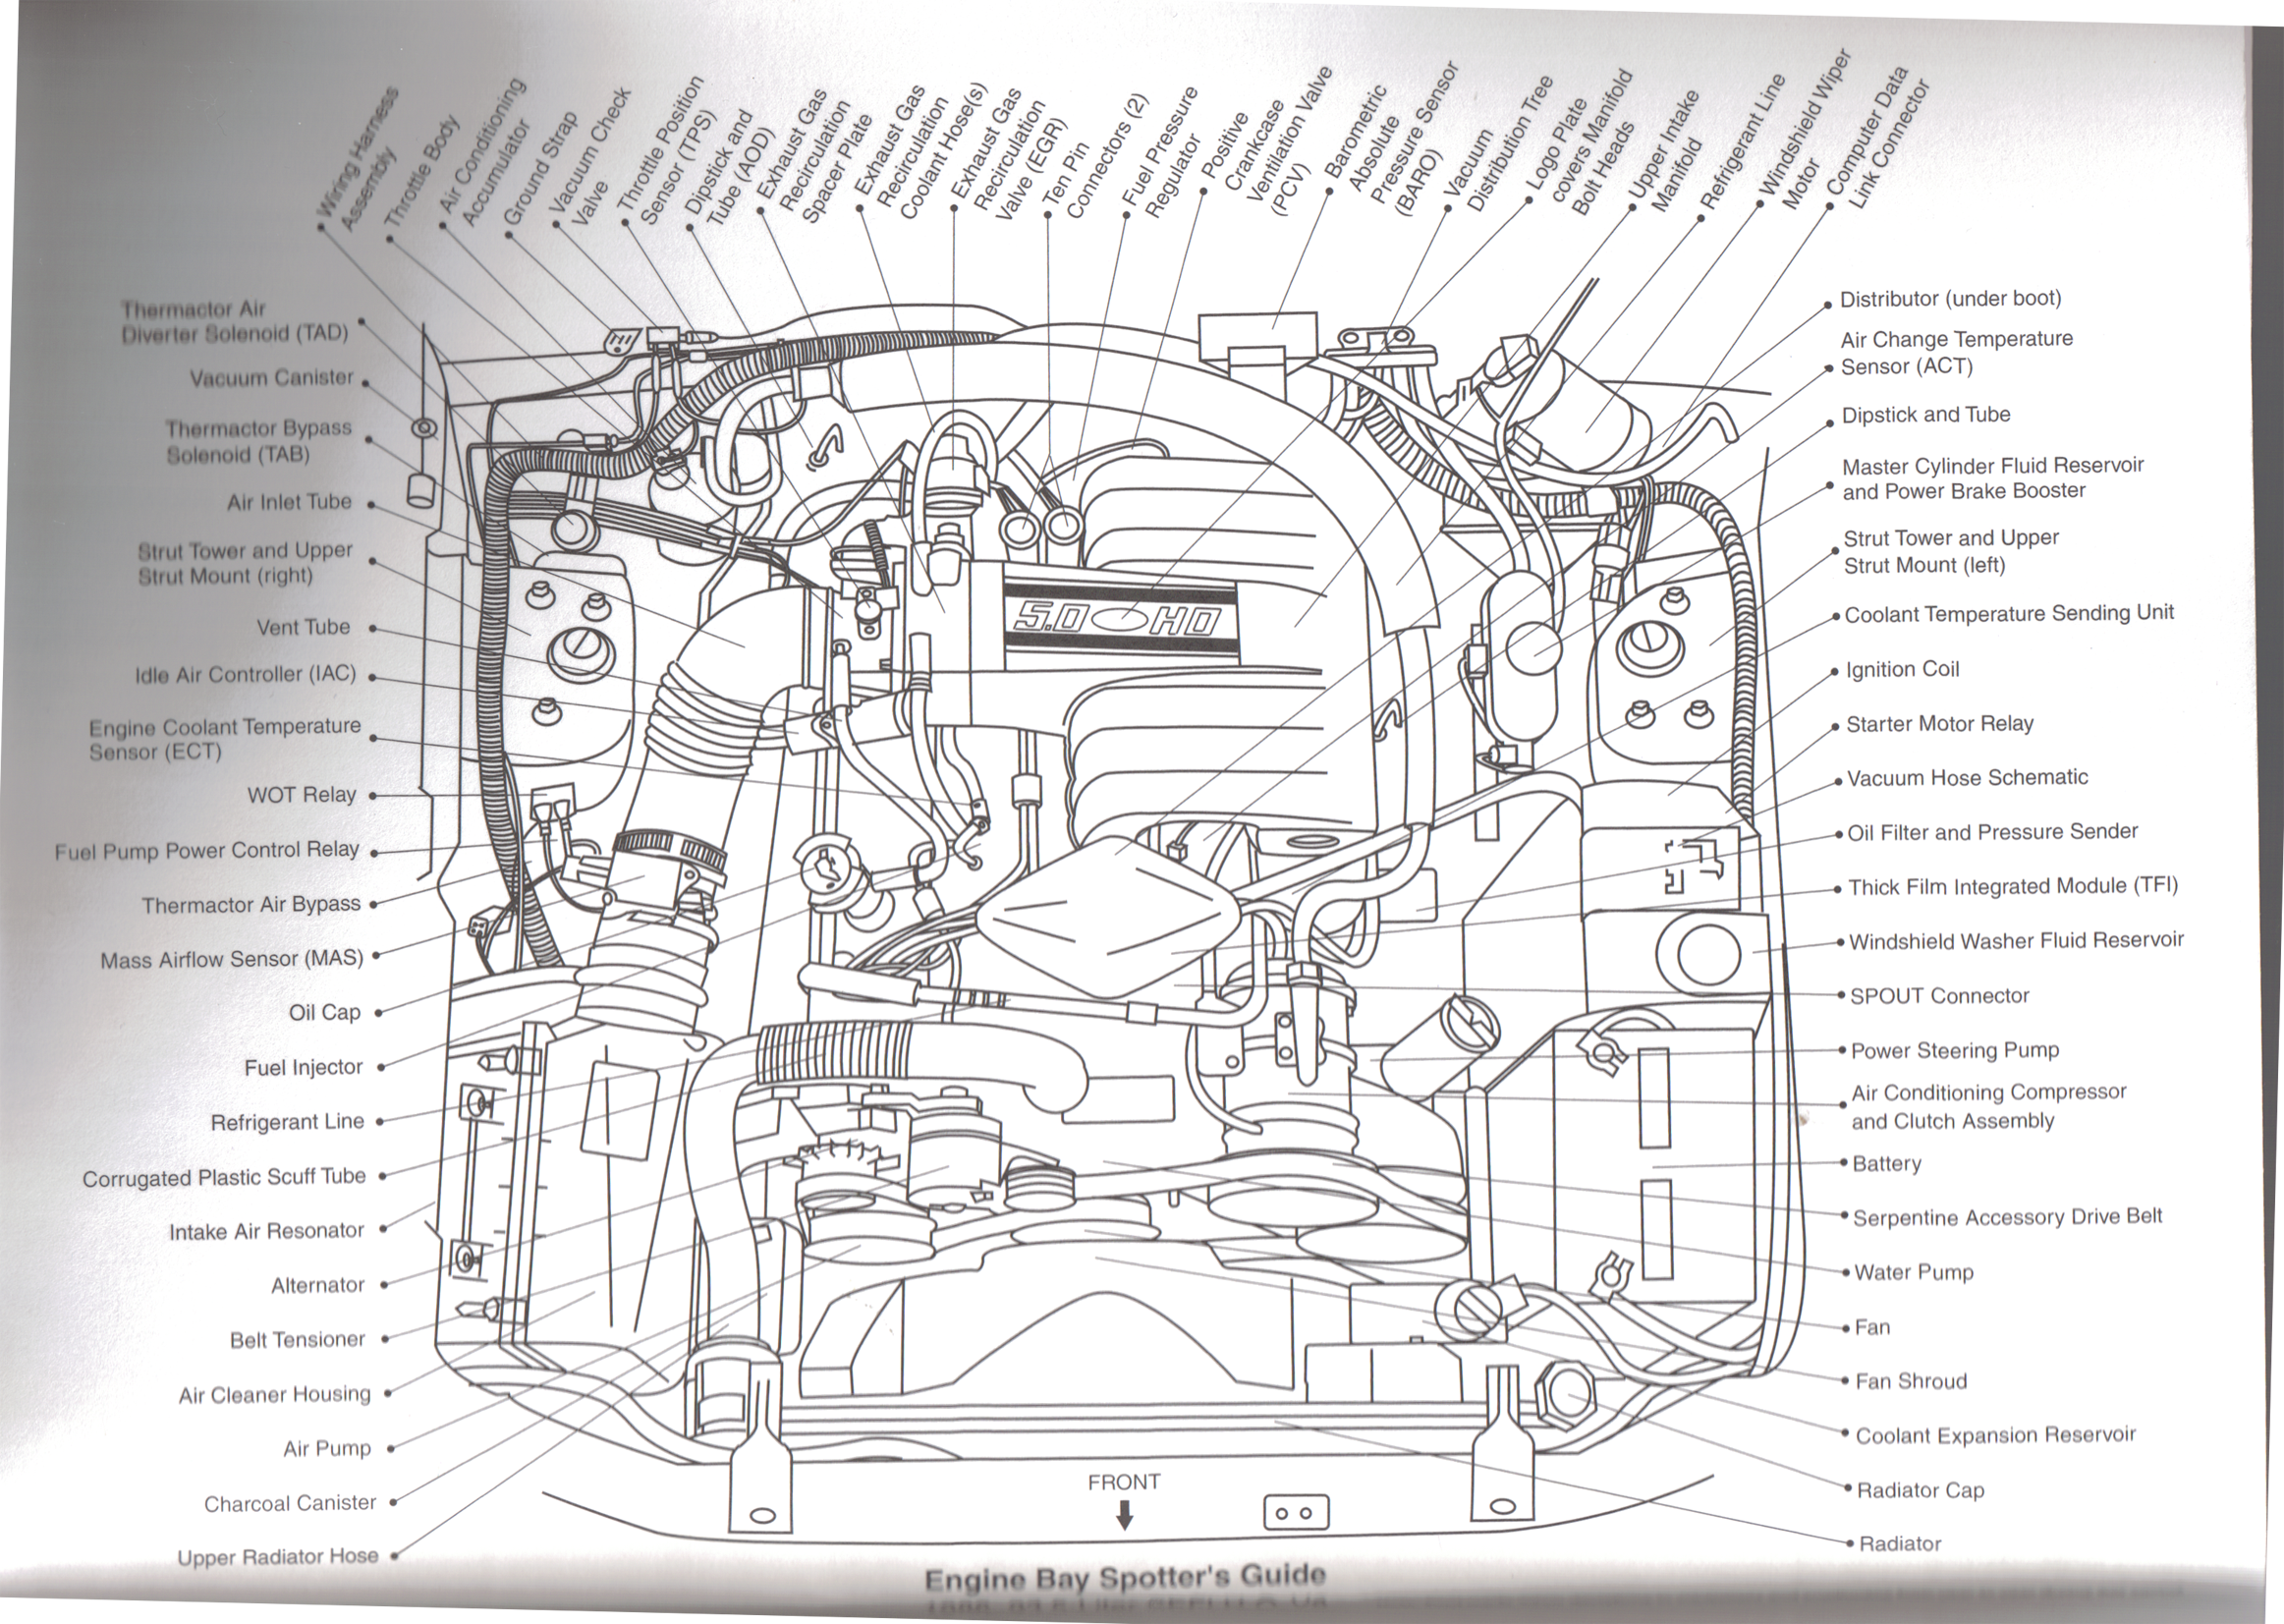 1987 1993 foxbody 5.0 sefi v8 engine part diagram everything you need to know about 1979 1993 foxbody mustangs ignition wiring diagram 93 mustang at honlapkeszites.co